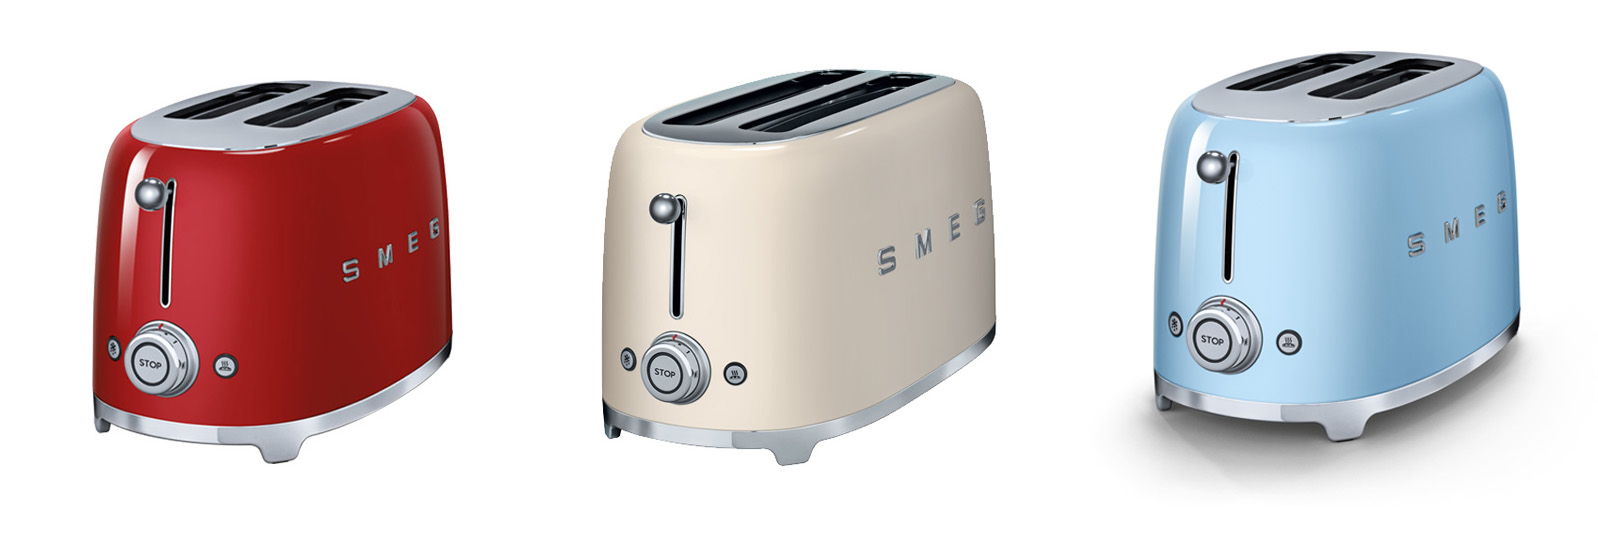 SMEG Launches Stylish Small Appliances